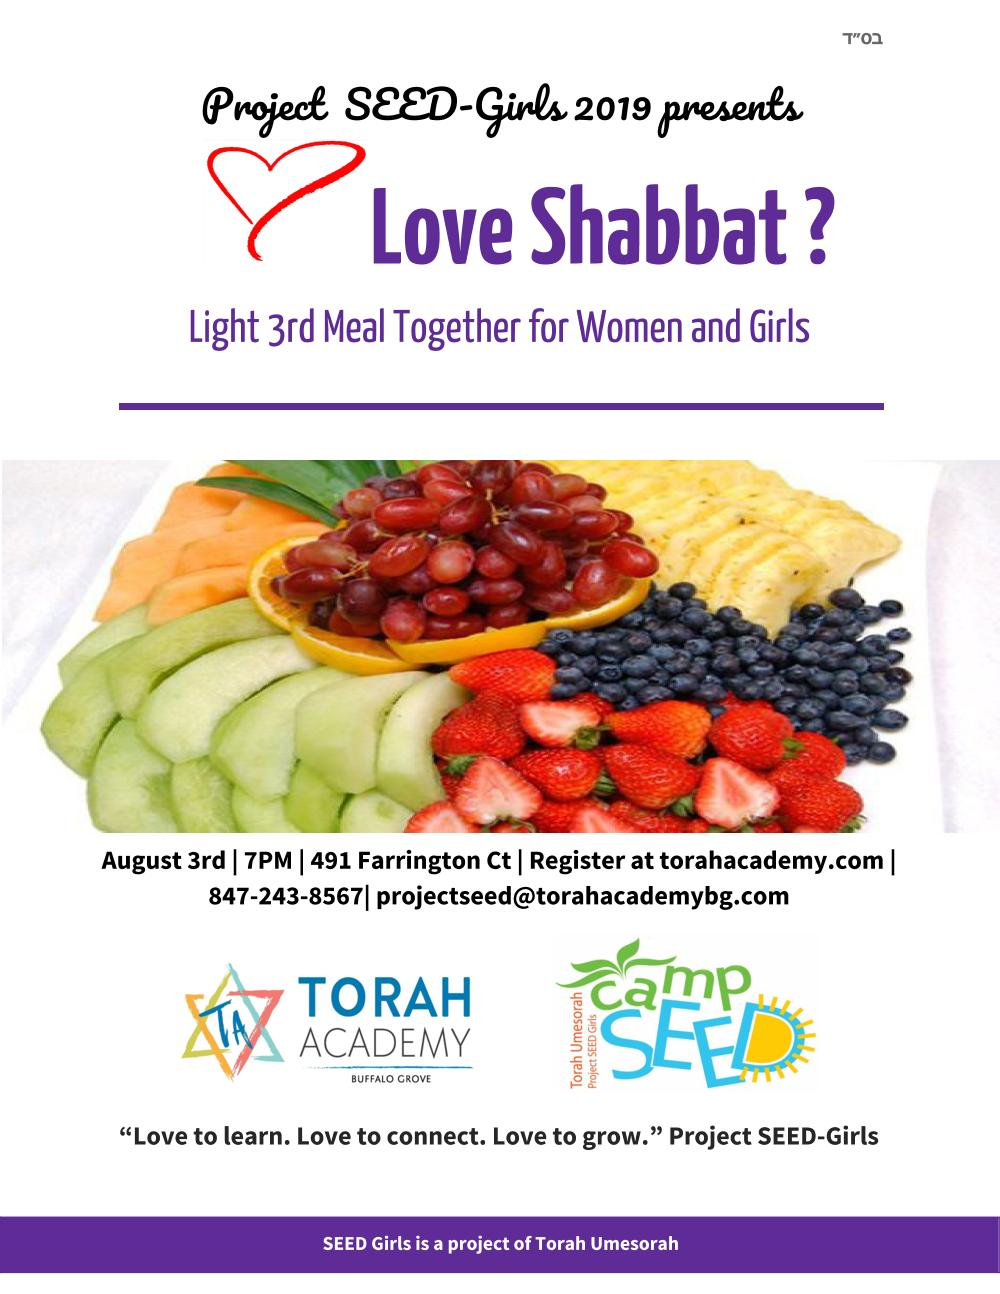 Enjoy the inspiration that the end of Shabbat brings. Join us for seudah shlisheet (the 3rd Shabbat meal), spiced with friends, songs and delicious food! Please plan to be within walking distance for all Shabbat programming.